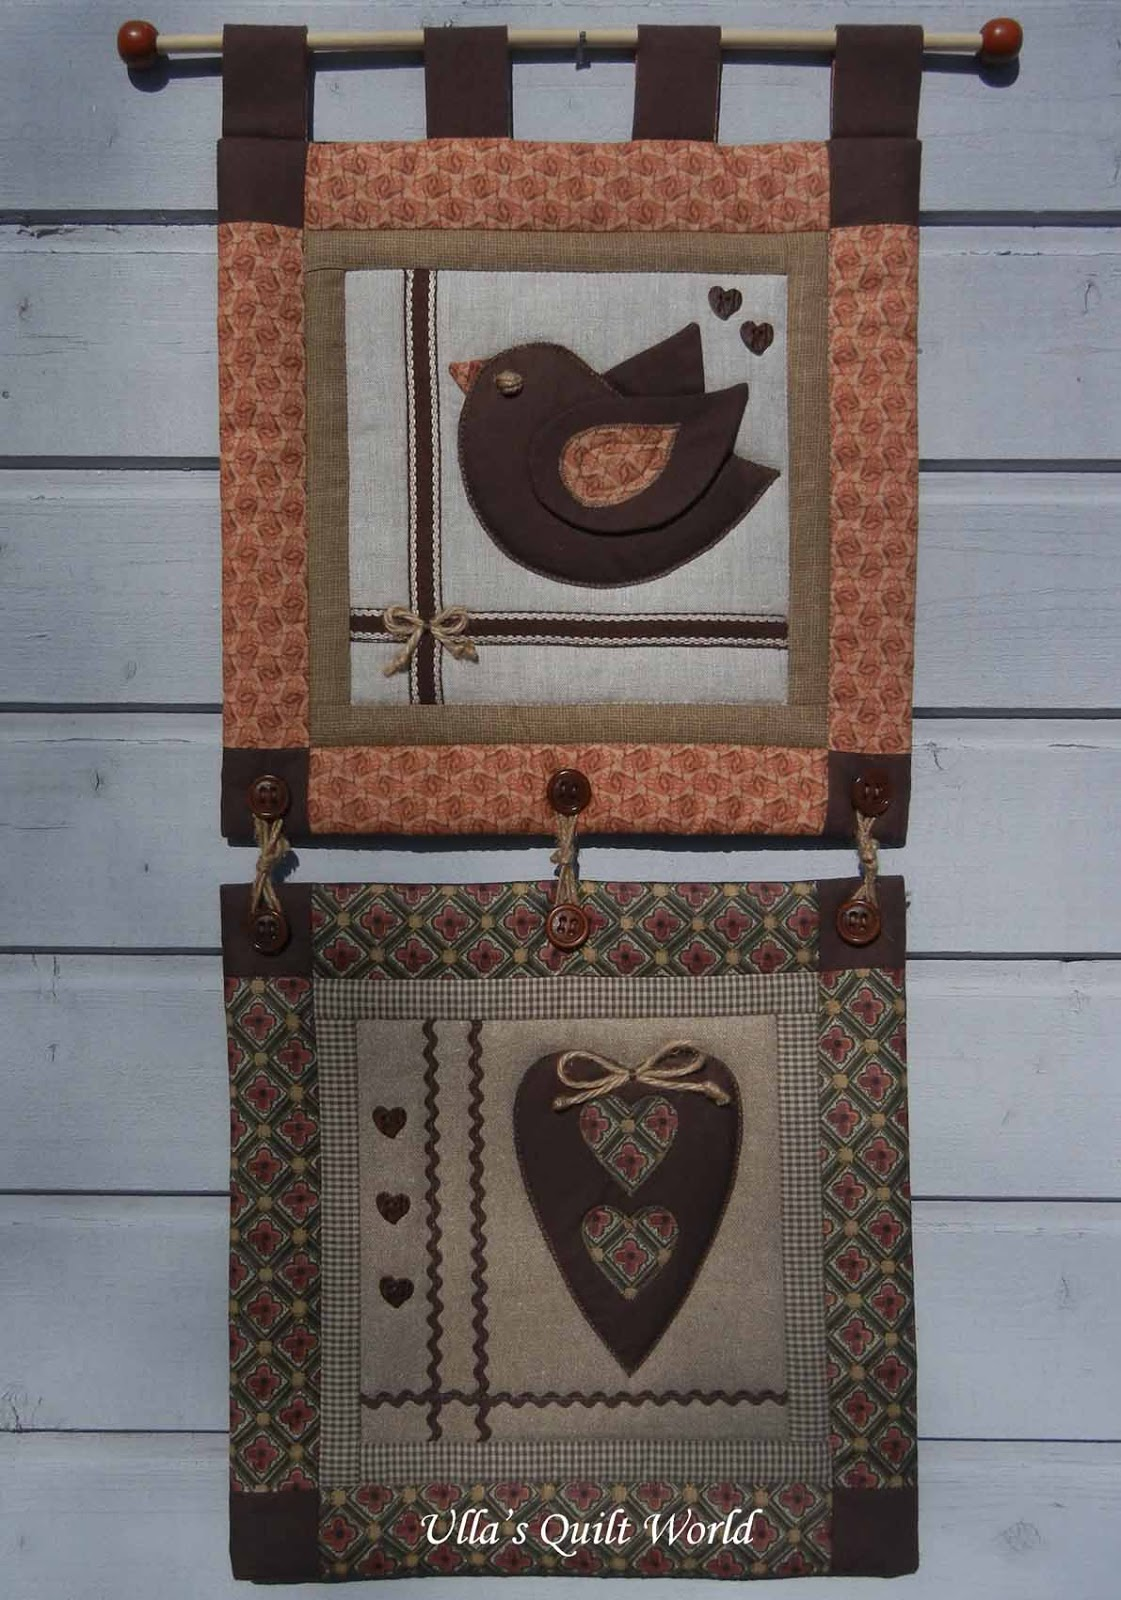 Ulla S Quilt World Wall Hanging Quilt Heart And Bird